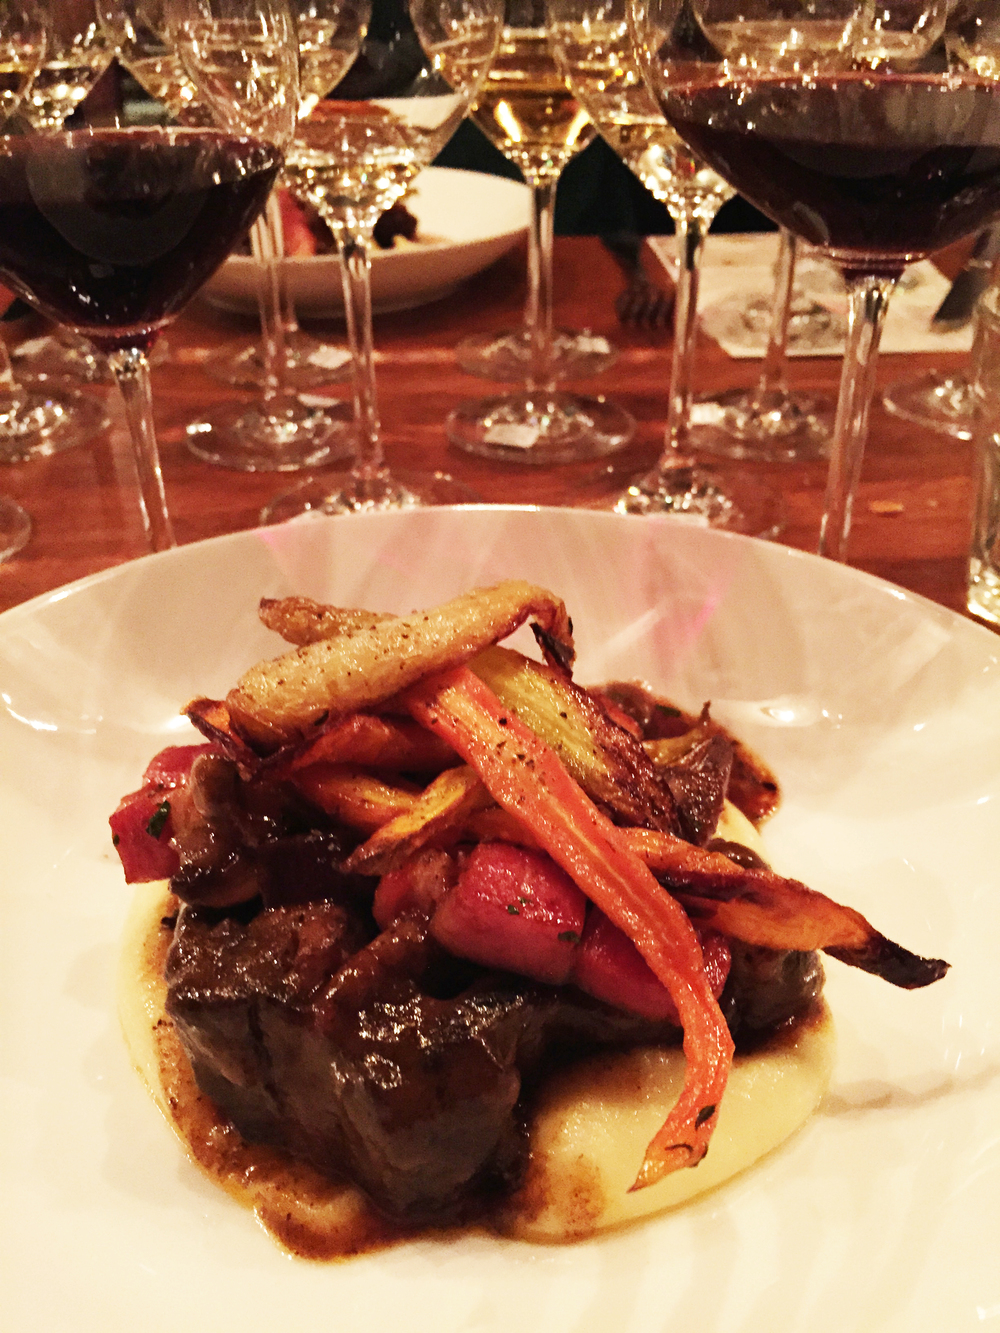 Beef Short Rib with potato mousseline and roasted vegetables.